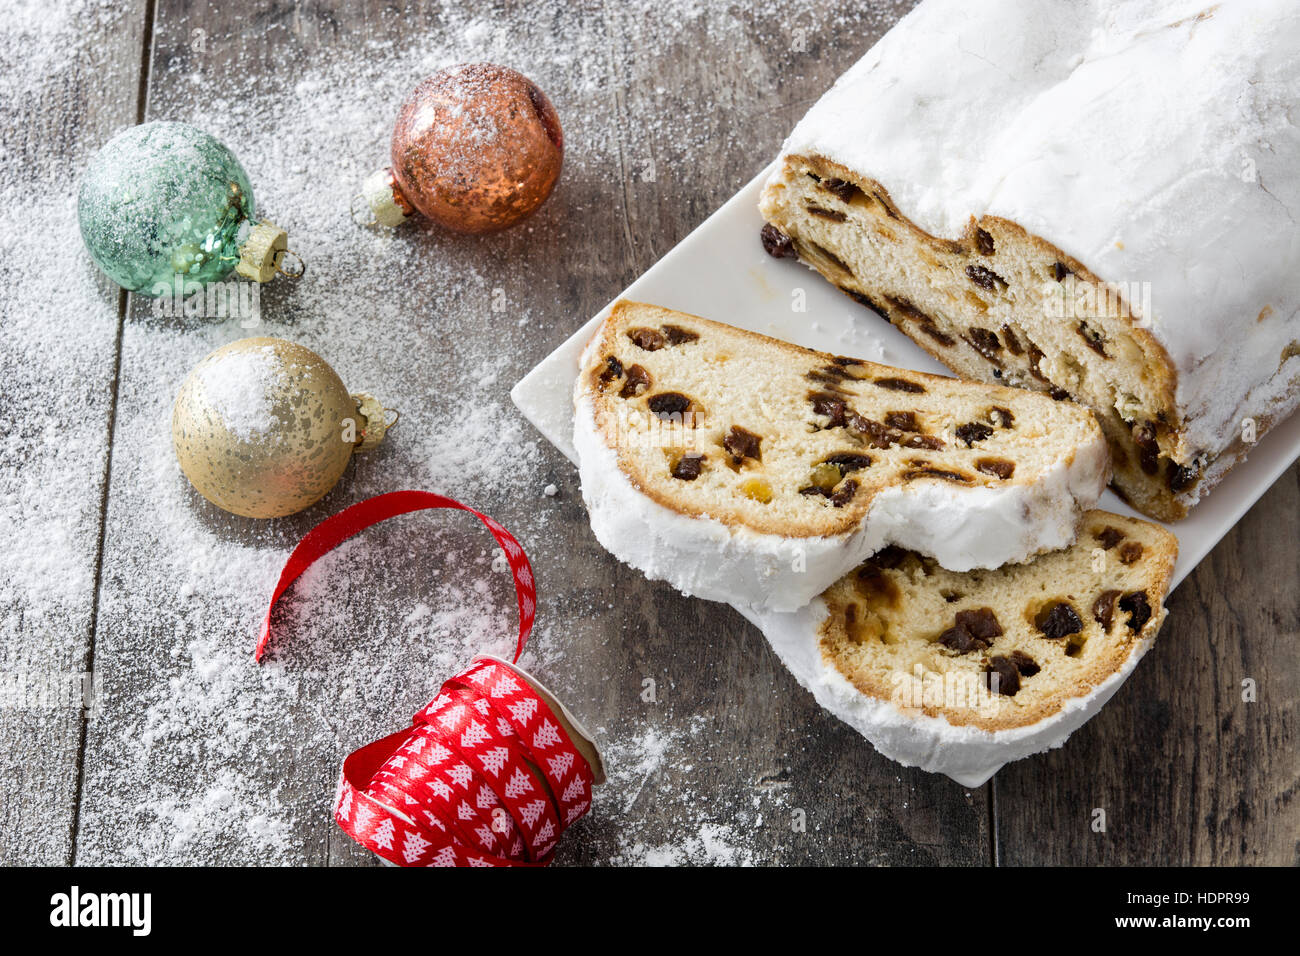 Christmas stollen. Traditional German Christmas dessert on wooden background - Stock Image